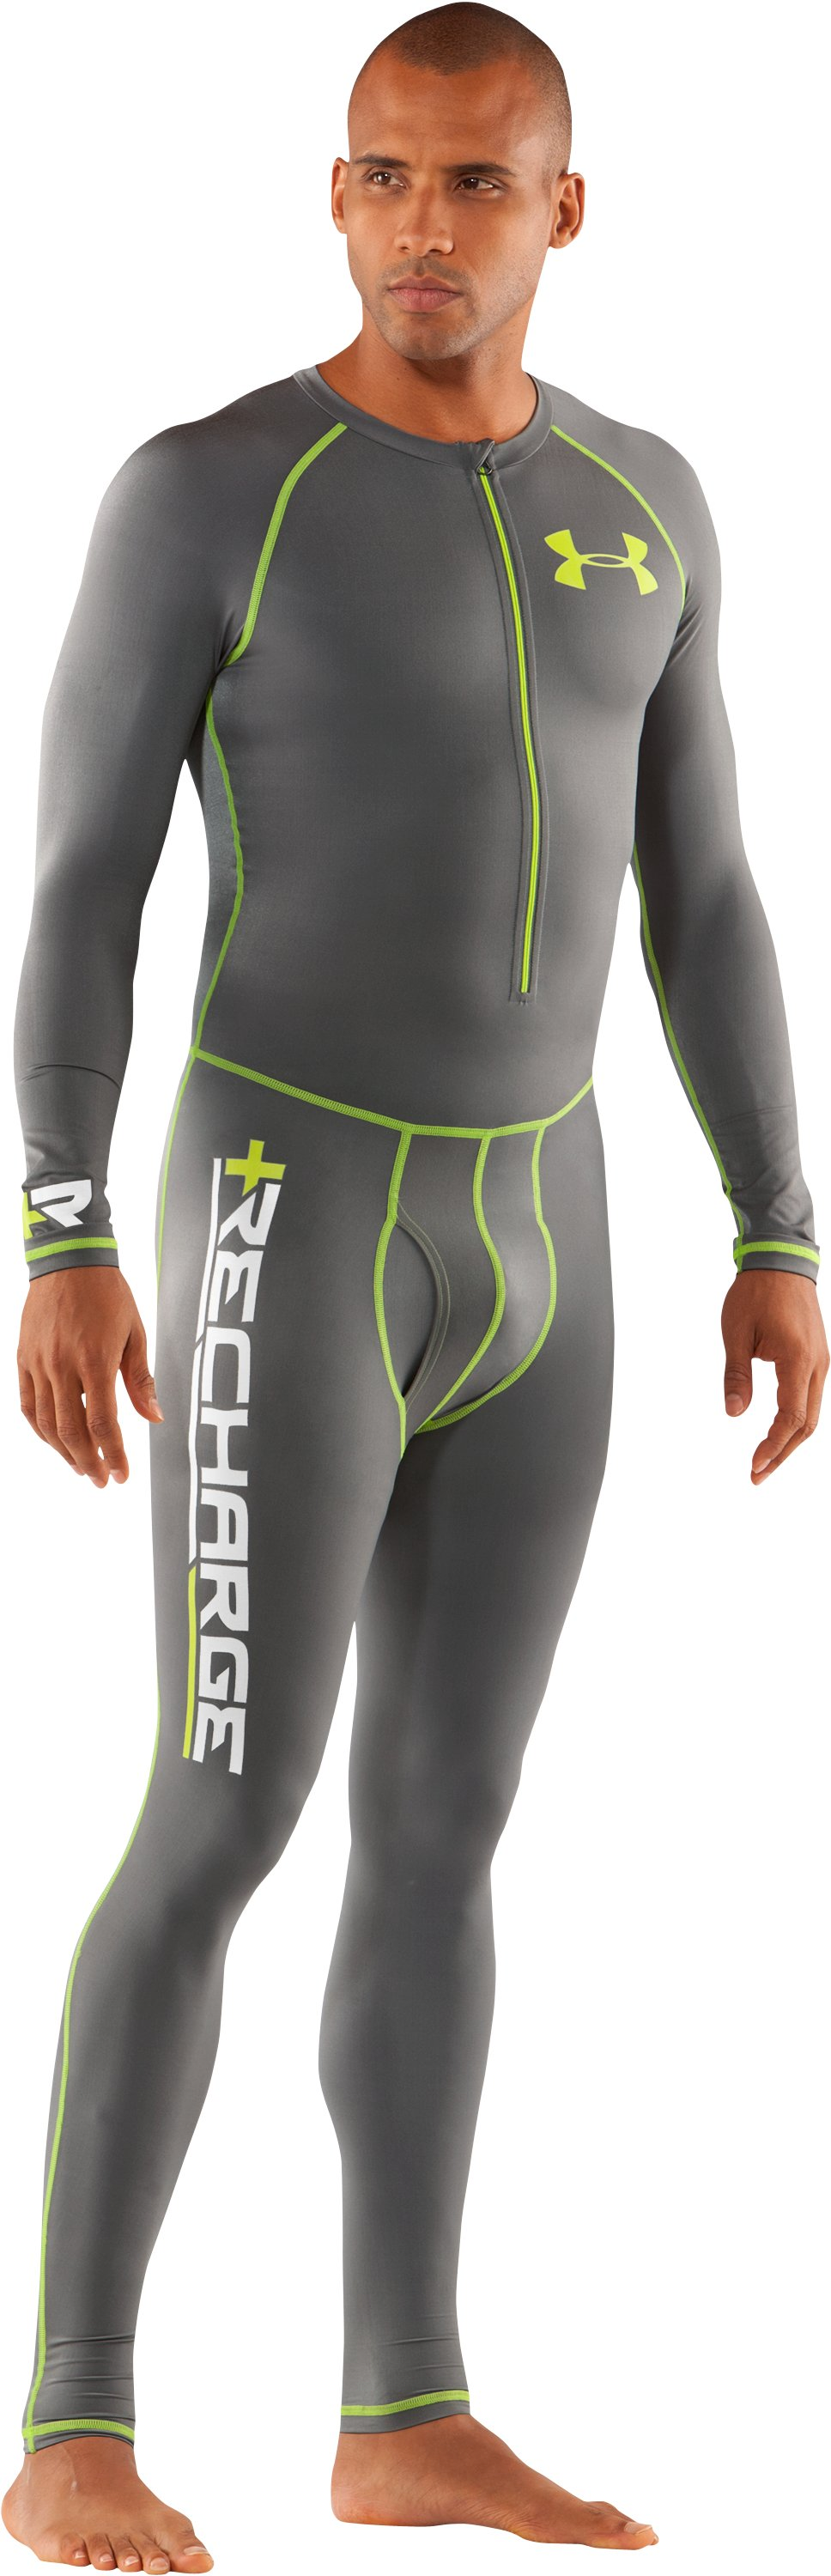 Men's Recharge® Energy Suit